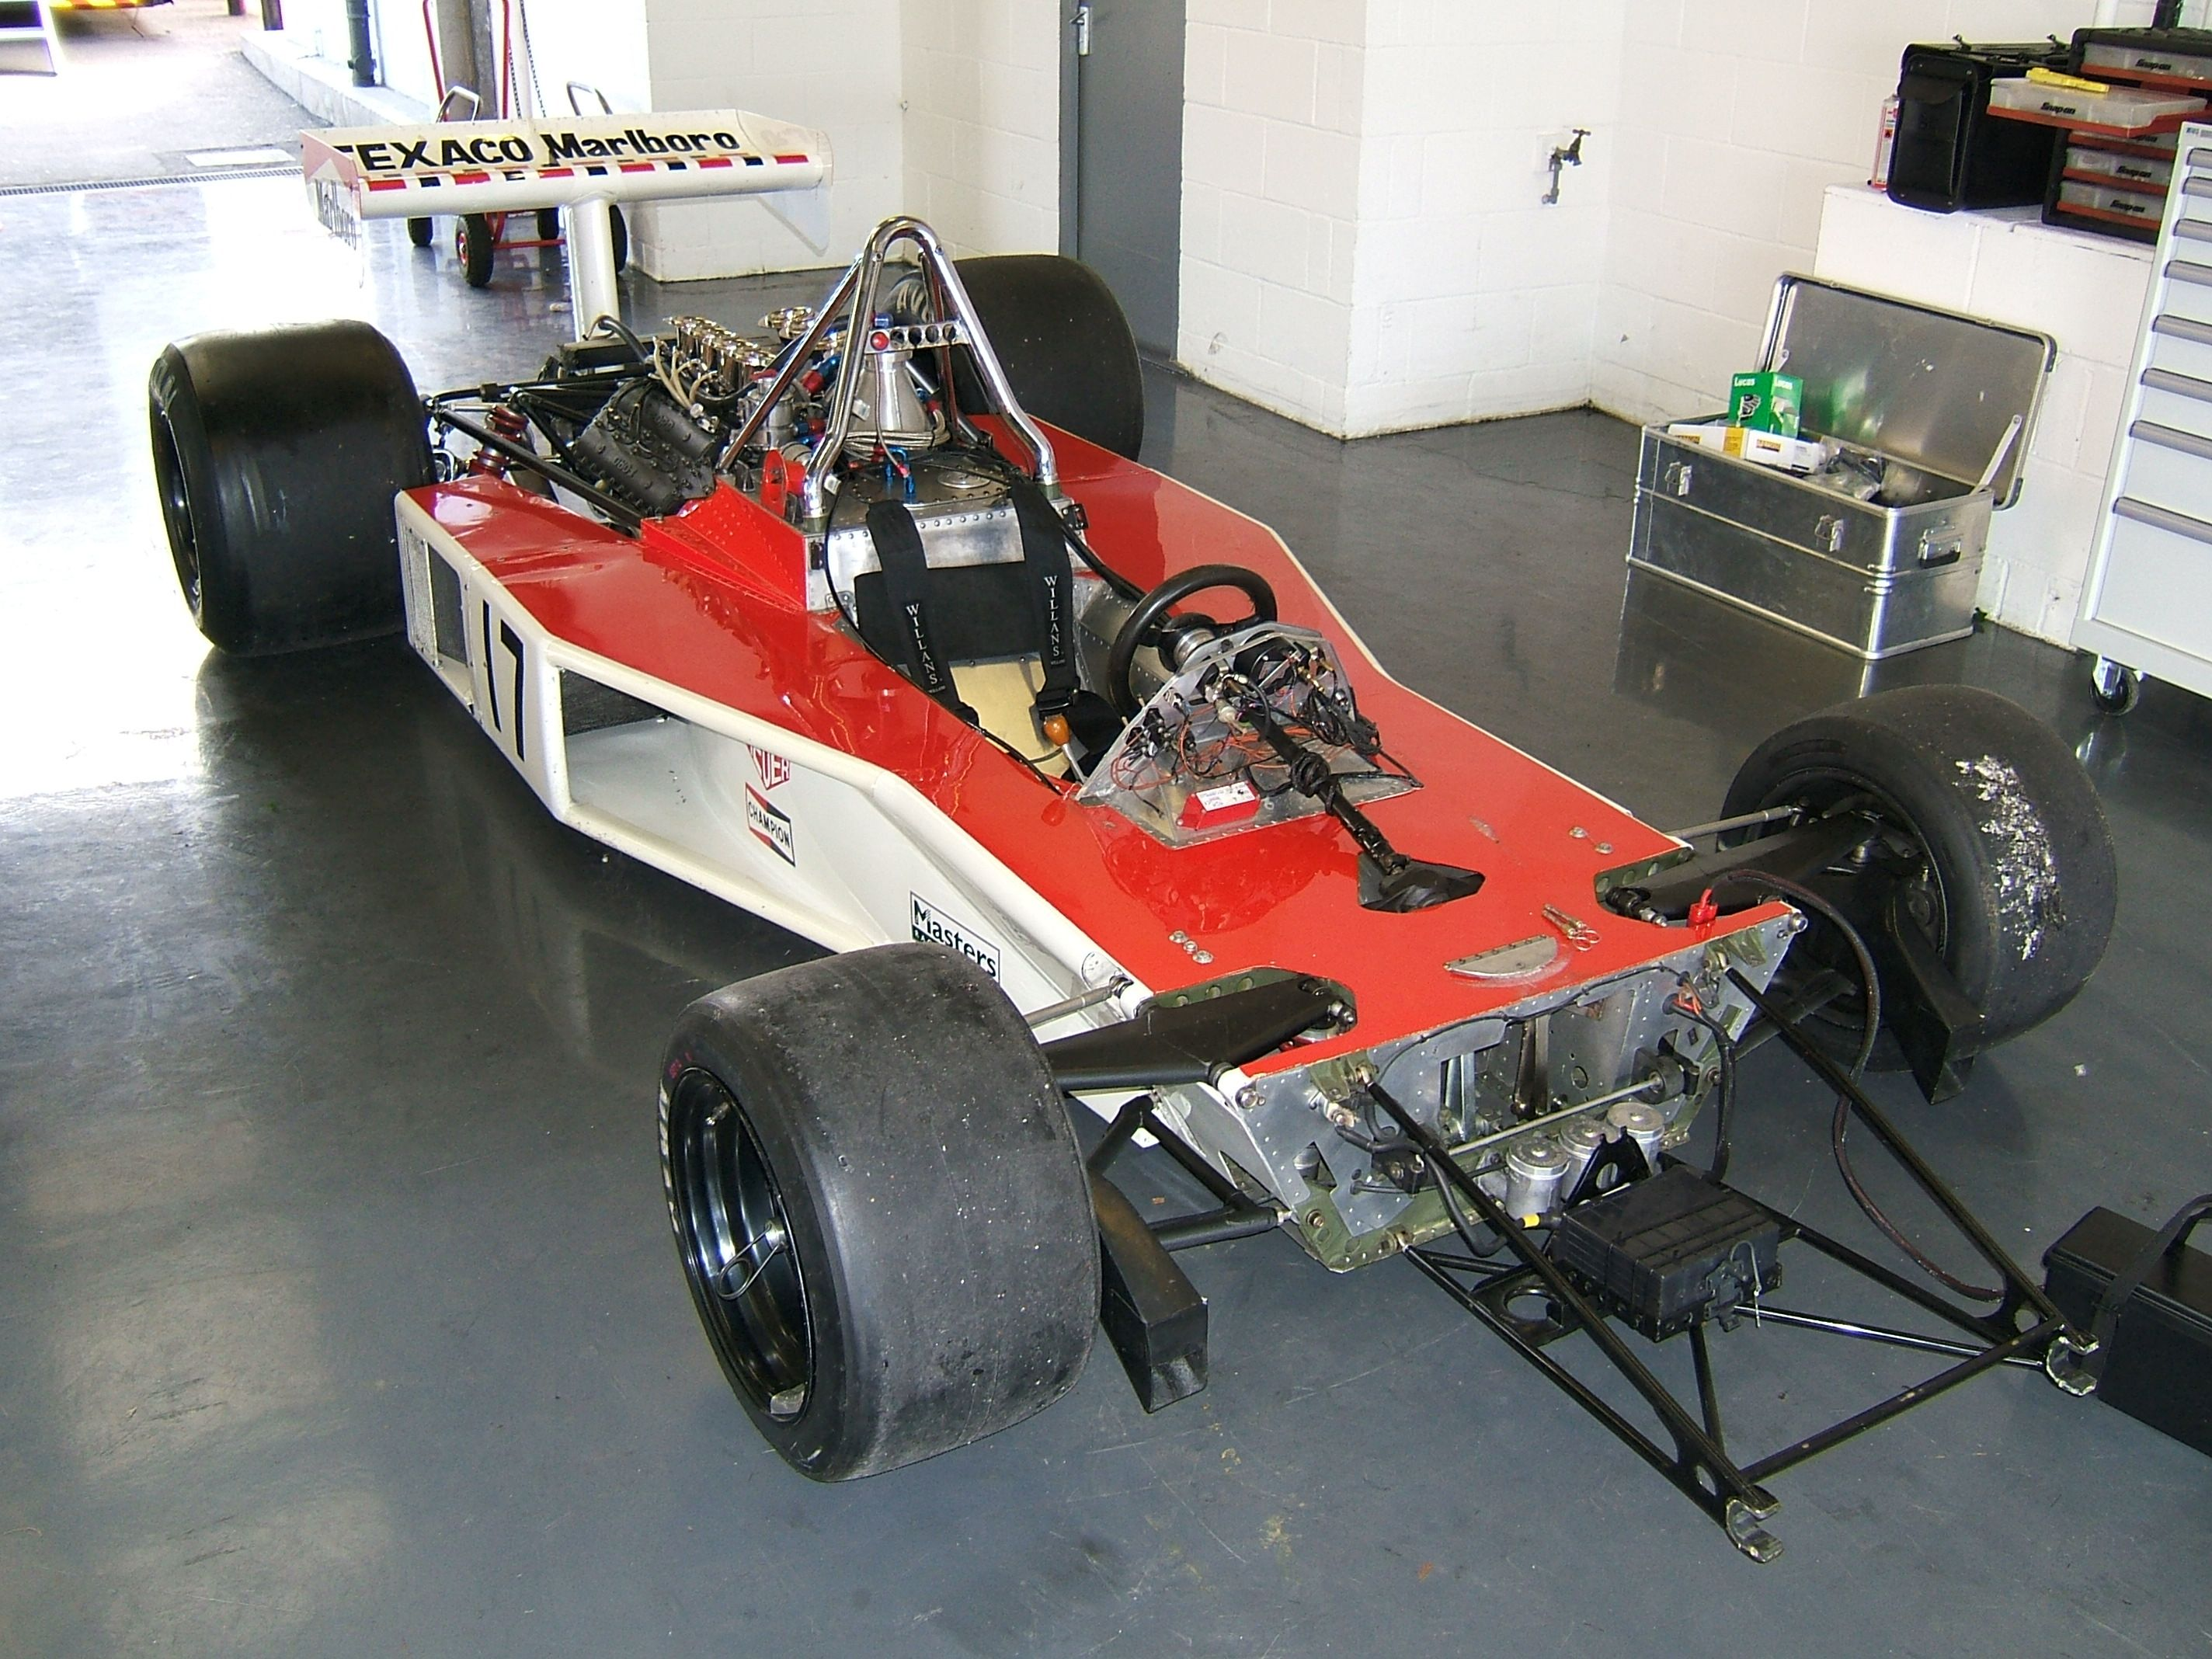 File:McLaren M23 without bodywork.jpg - Wikipedia, the free ...